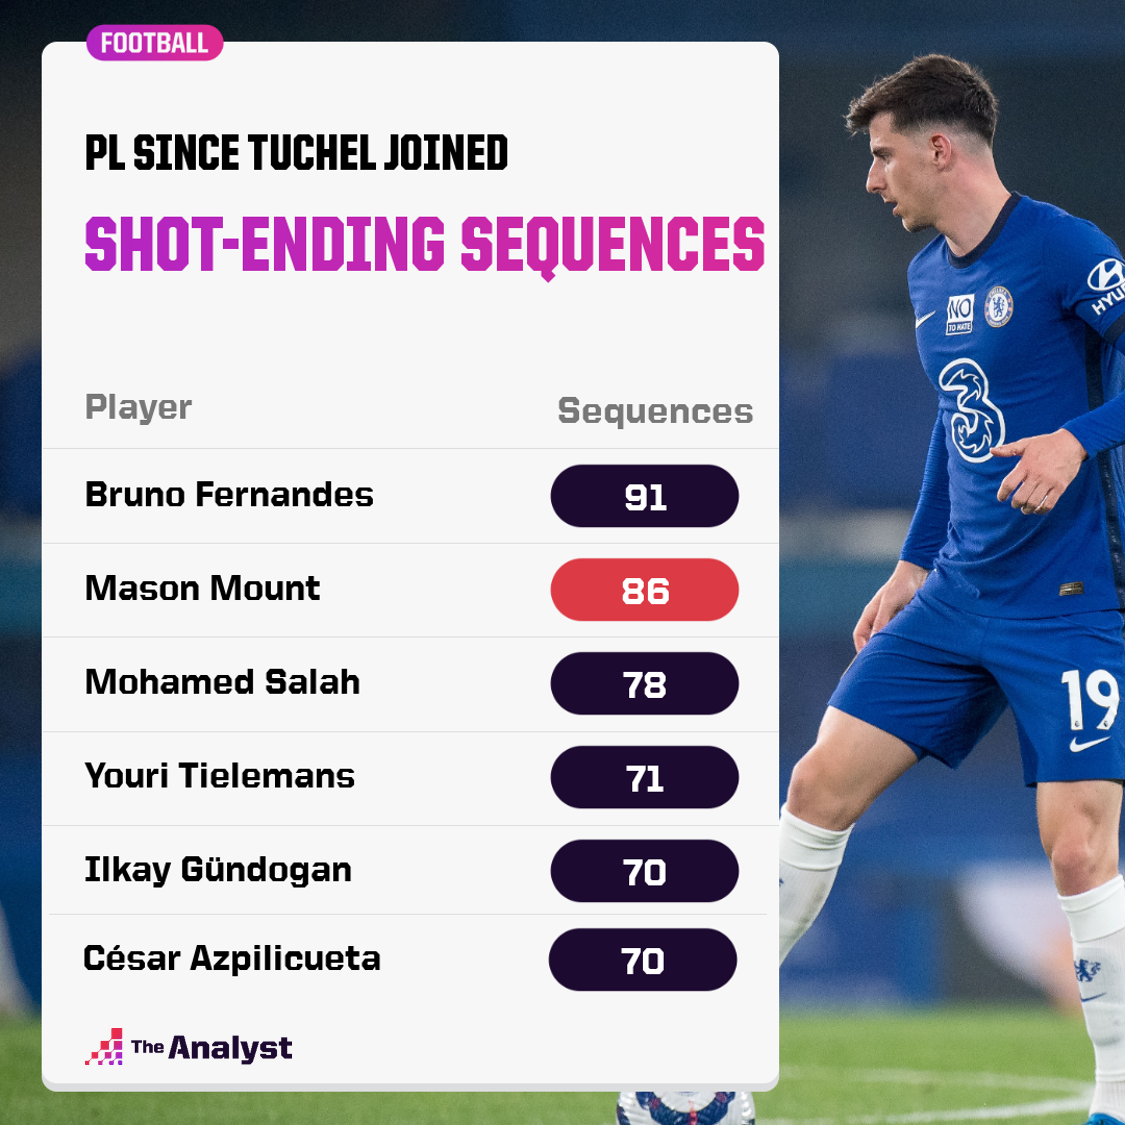 Only Bruno Fernandes has been involved in more shot-ending sequences than Mason Mount since January 25